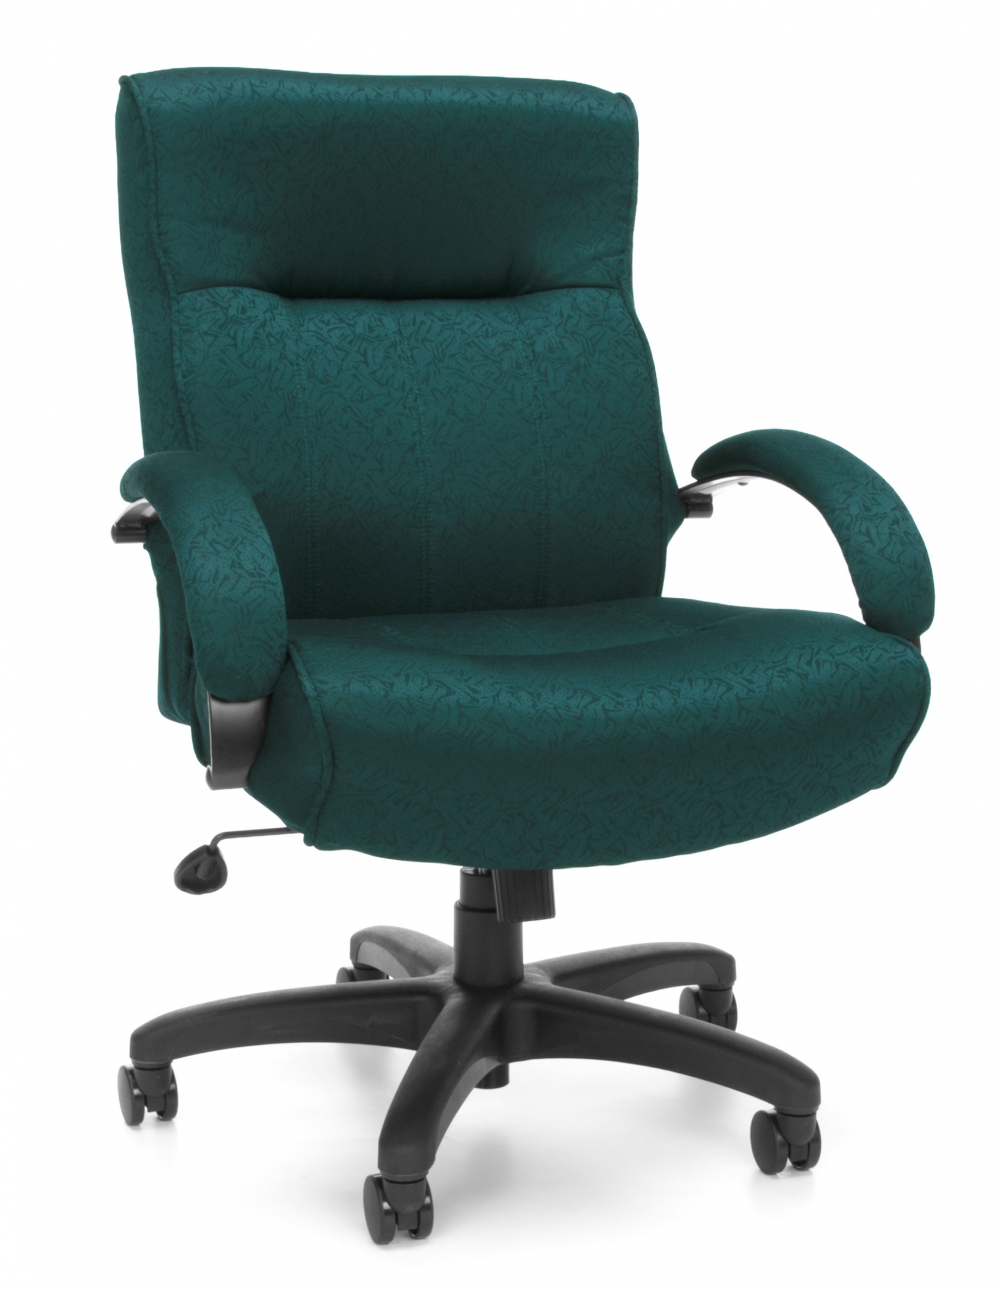 Big and tall executive office chairs cub 711 302 1 teal mfo